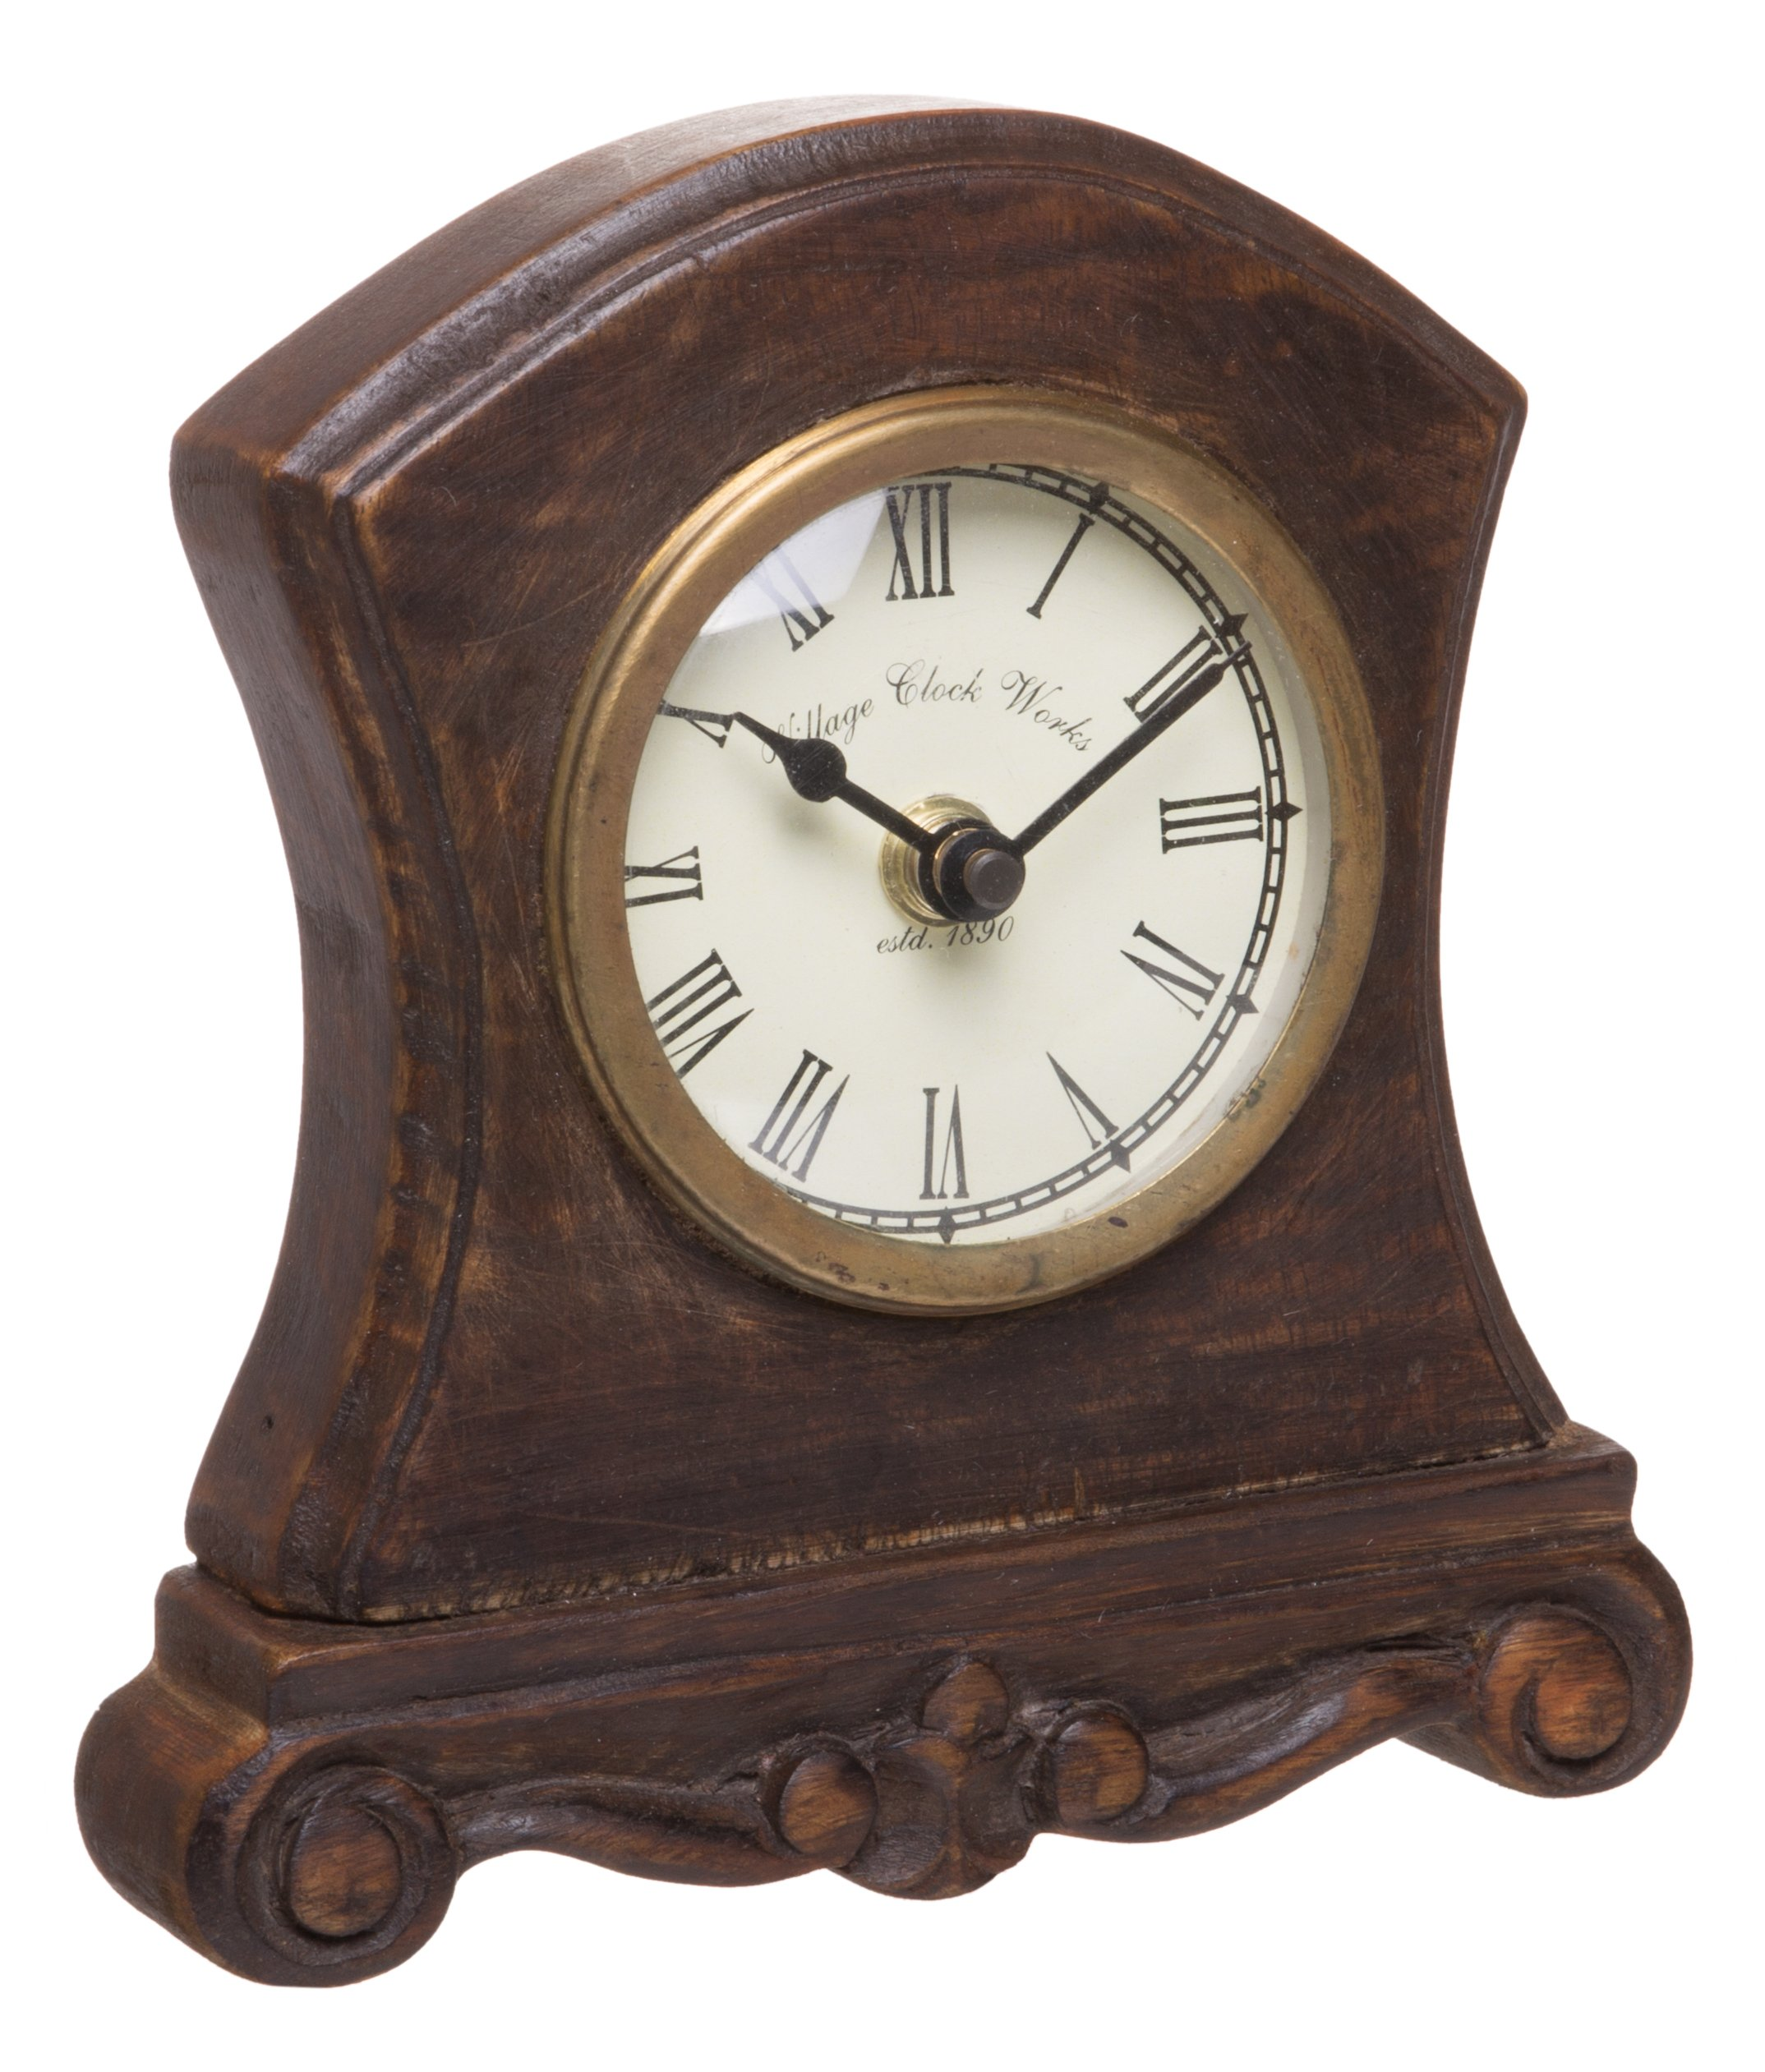 Red Co. Antique Inspired Wooden Table Top Analog Clock, Mantelpiece, Small, 6-inch by Red Co. (Image #1)